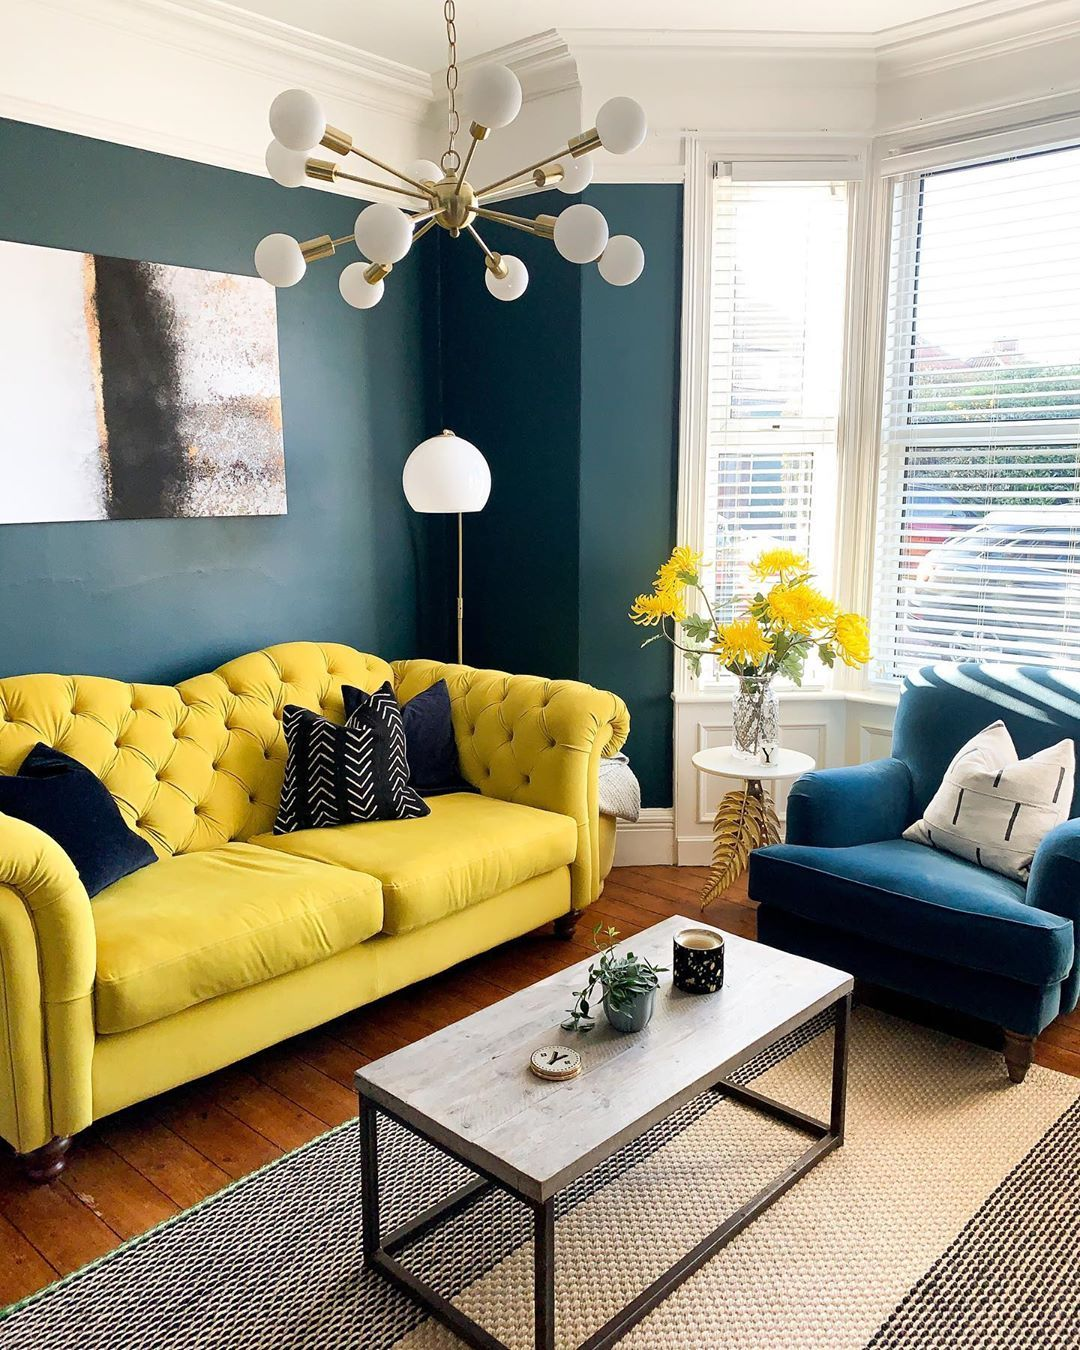 Yellow Best Colour Choice For Lockdown Colour Your Casa In 2020 Yellow Home Decor Yellow Furniture Sofa Colors